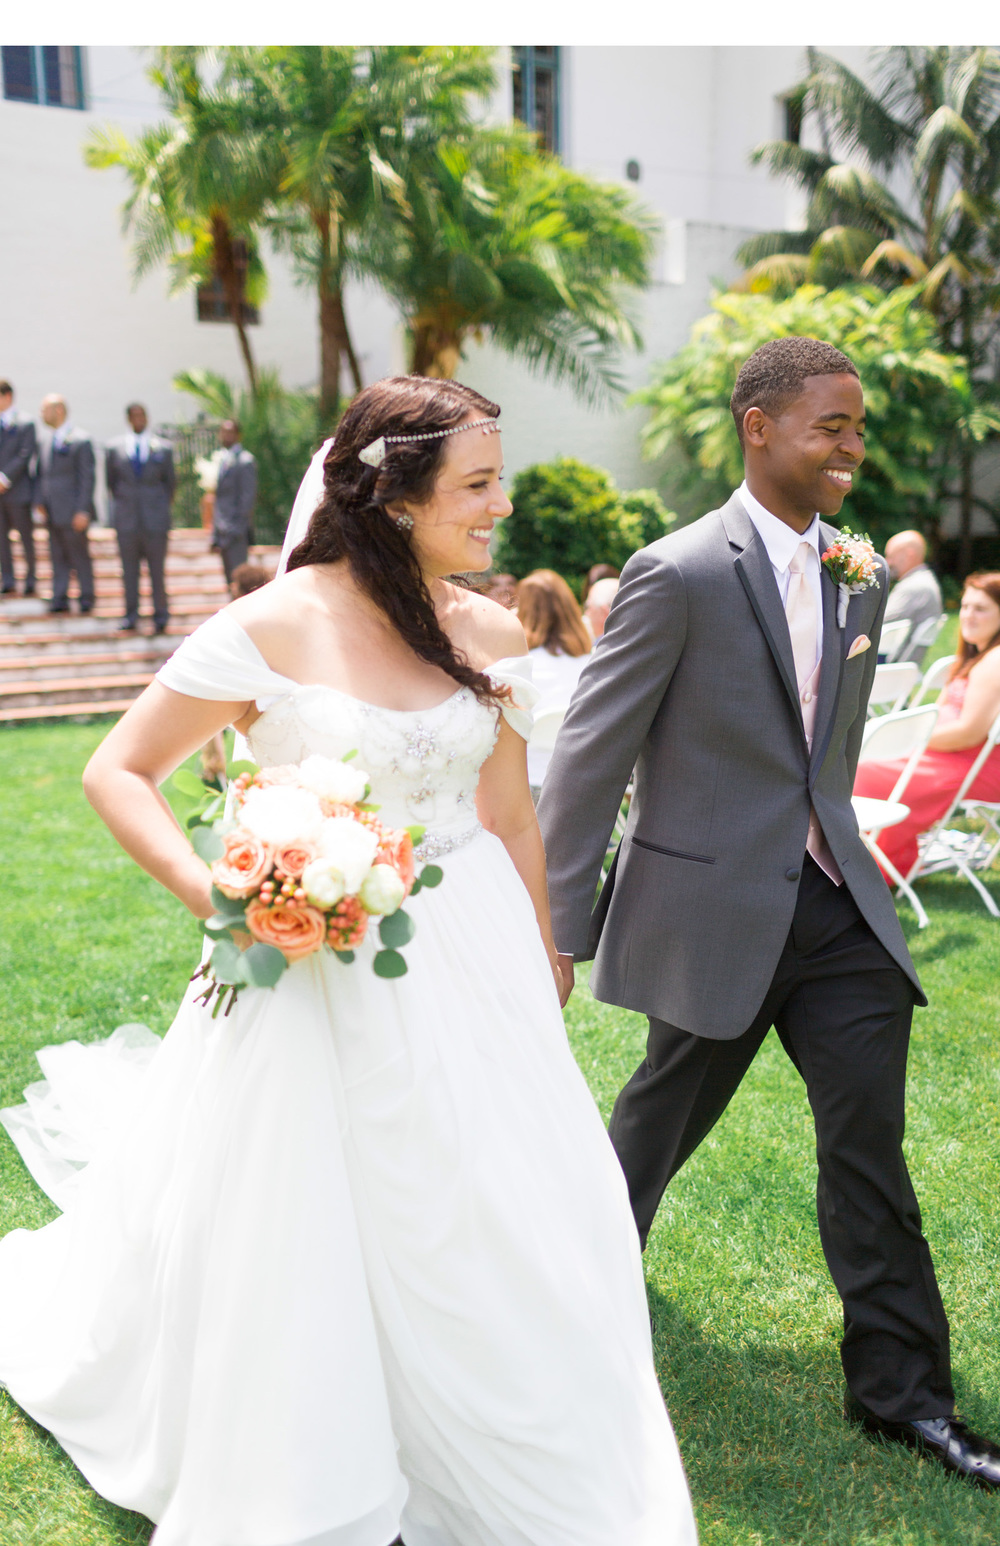 Santa-Barbara-Courthouse-Wedding_03.jpg